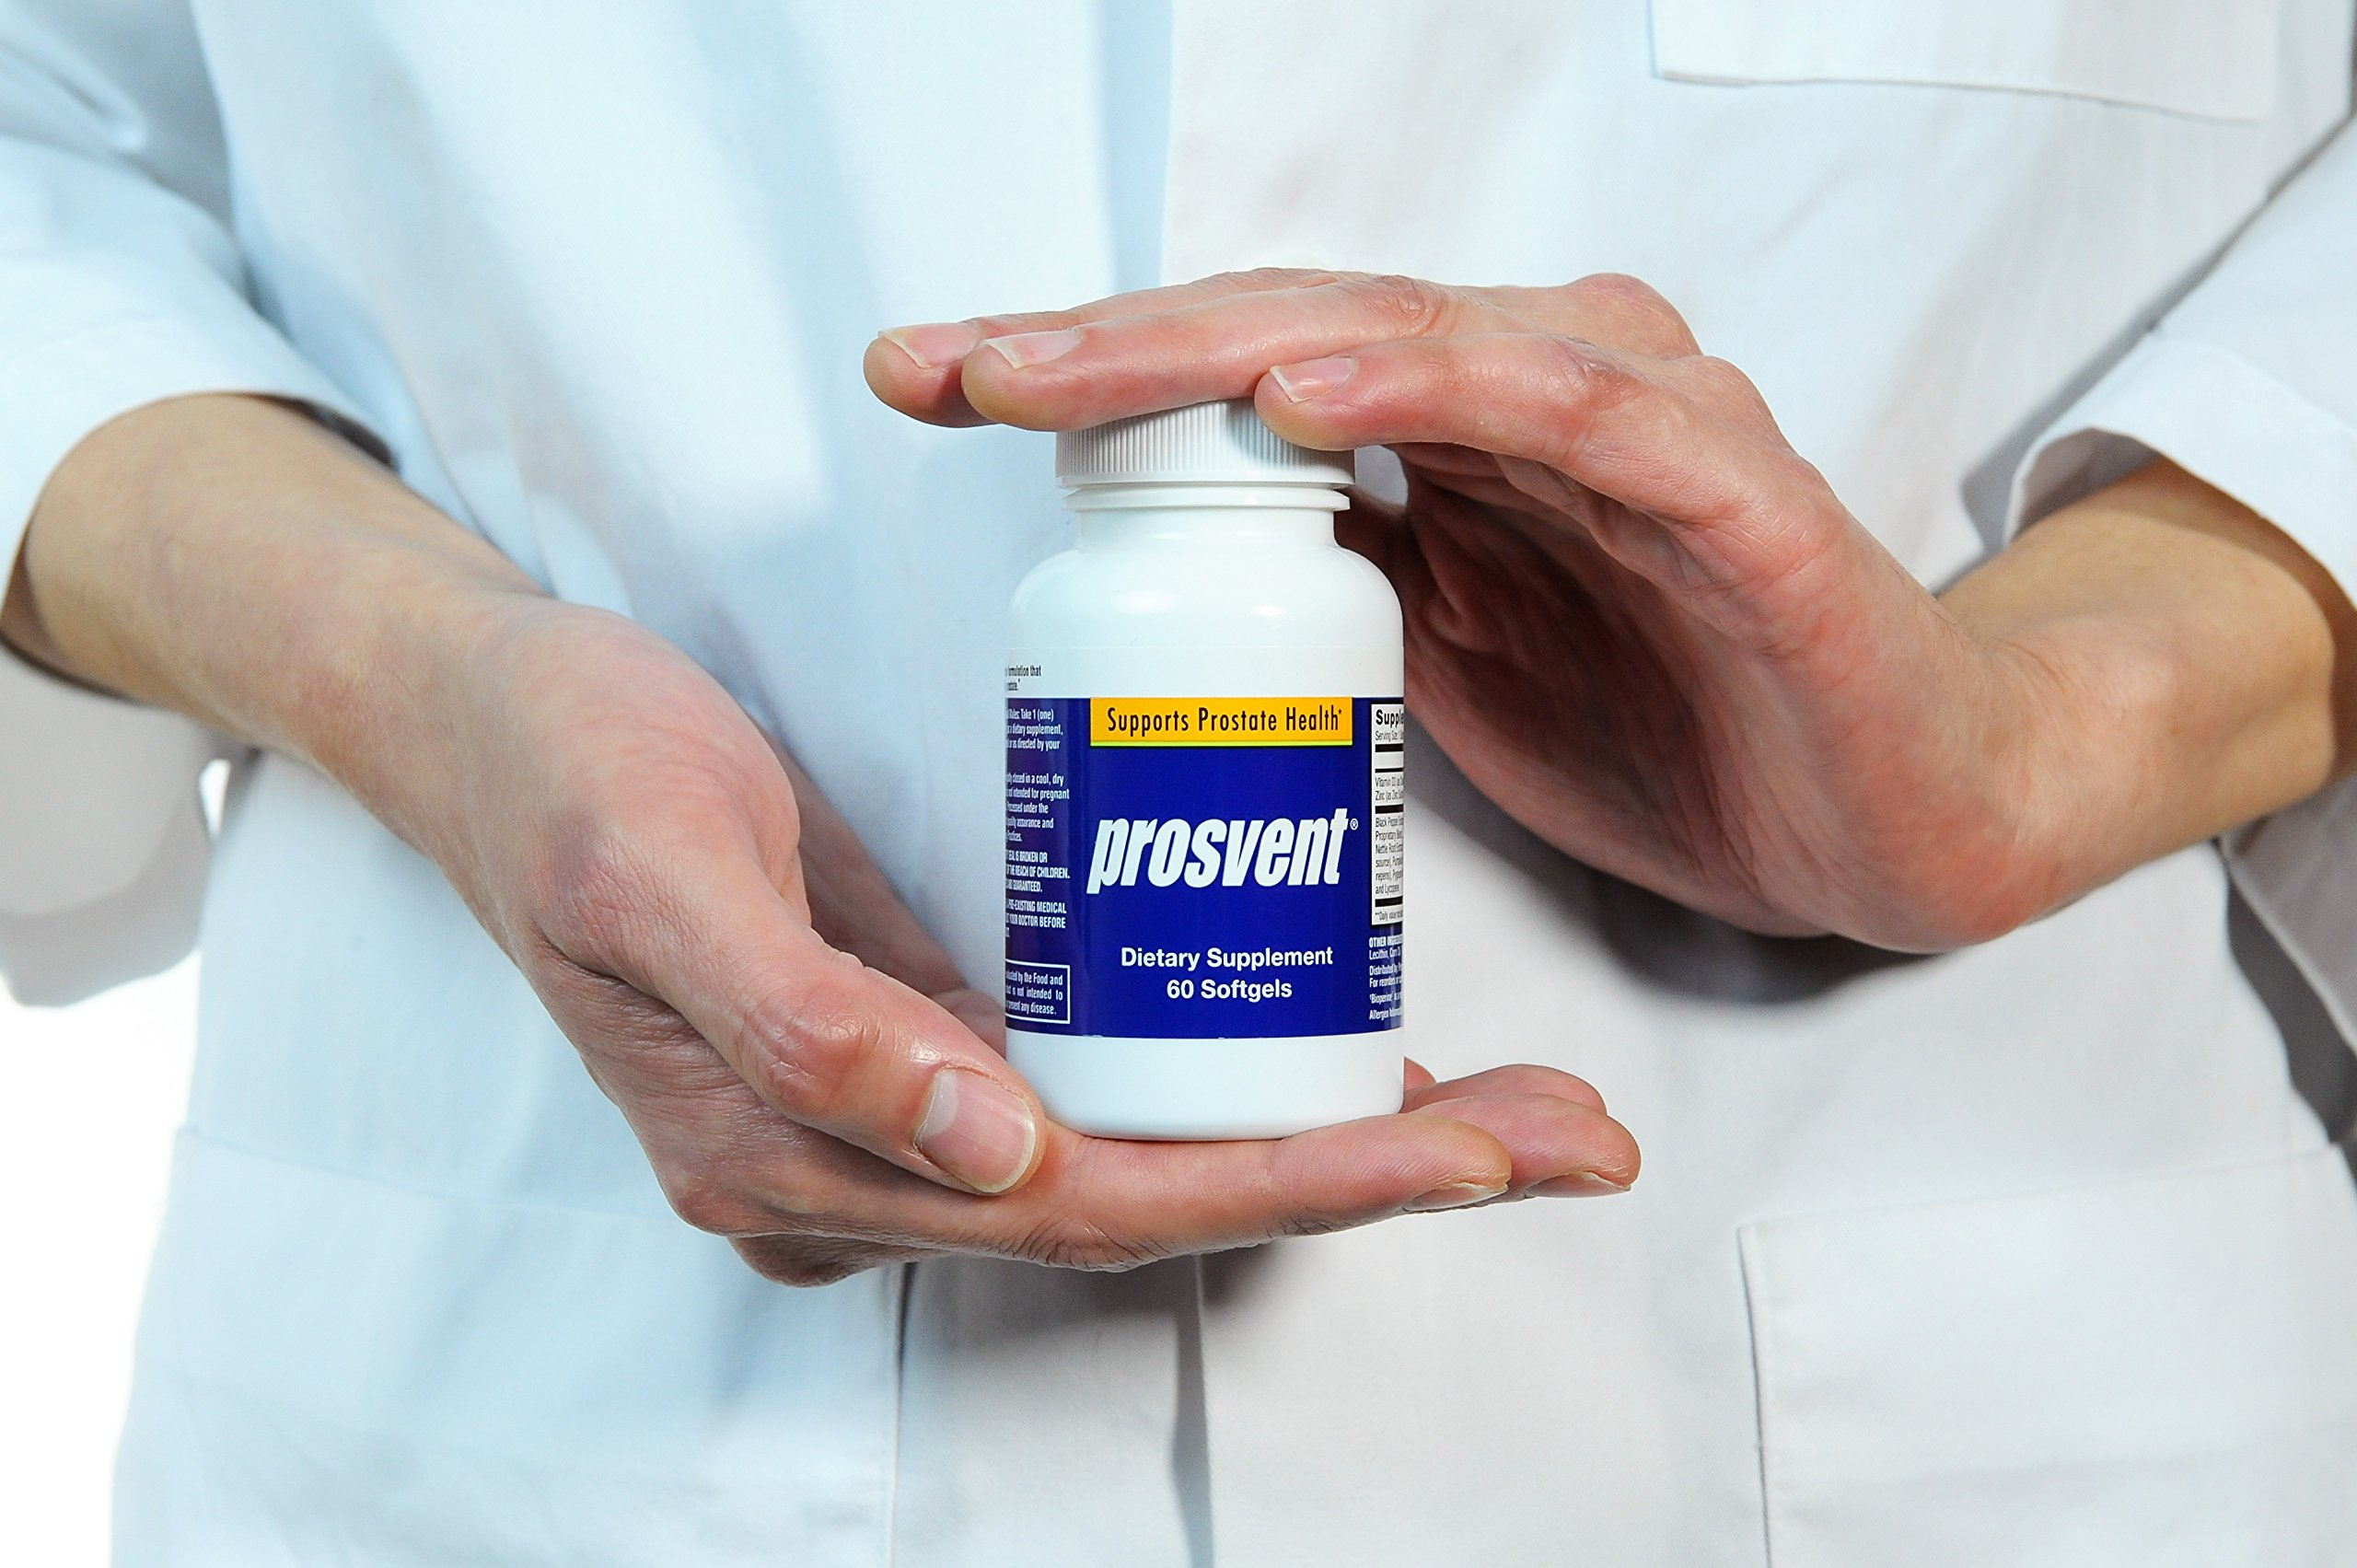 PROSVENT-NATURAL PROSTATE HEALTH SUPPLEMENT -Clinically Tested Ingredients- Reduce Urgency & Frequency. Improve Flow, Sleep, Health & Quality Of Life. OVER 180 MILLION DOSES SOLD! –3 Month Supply by Prosvent (Image #2)